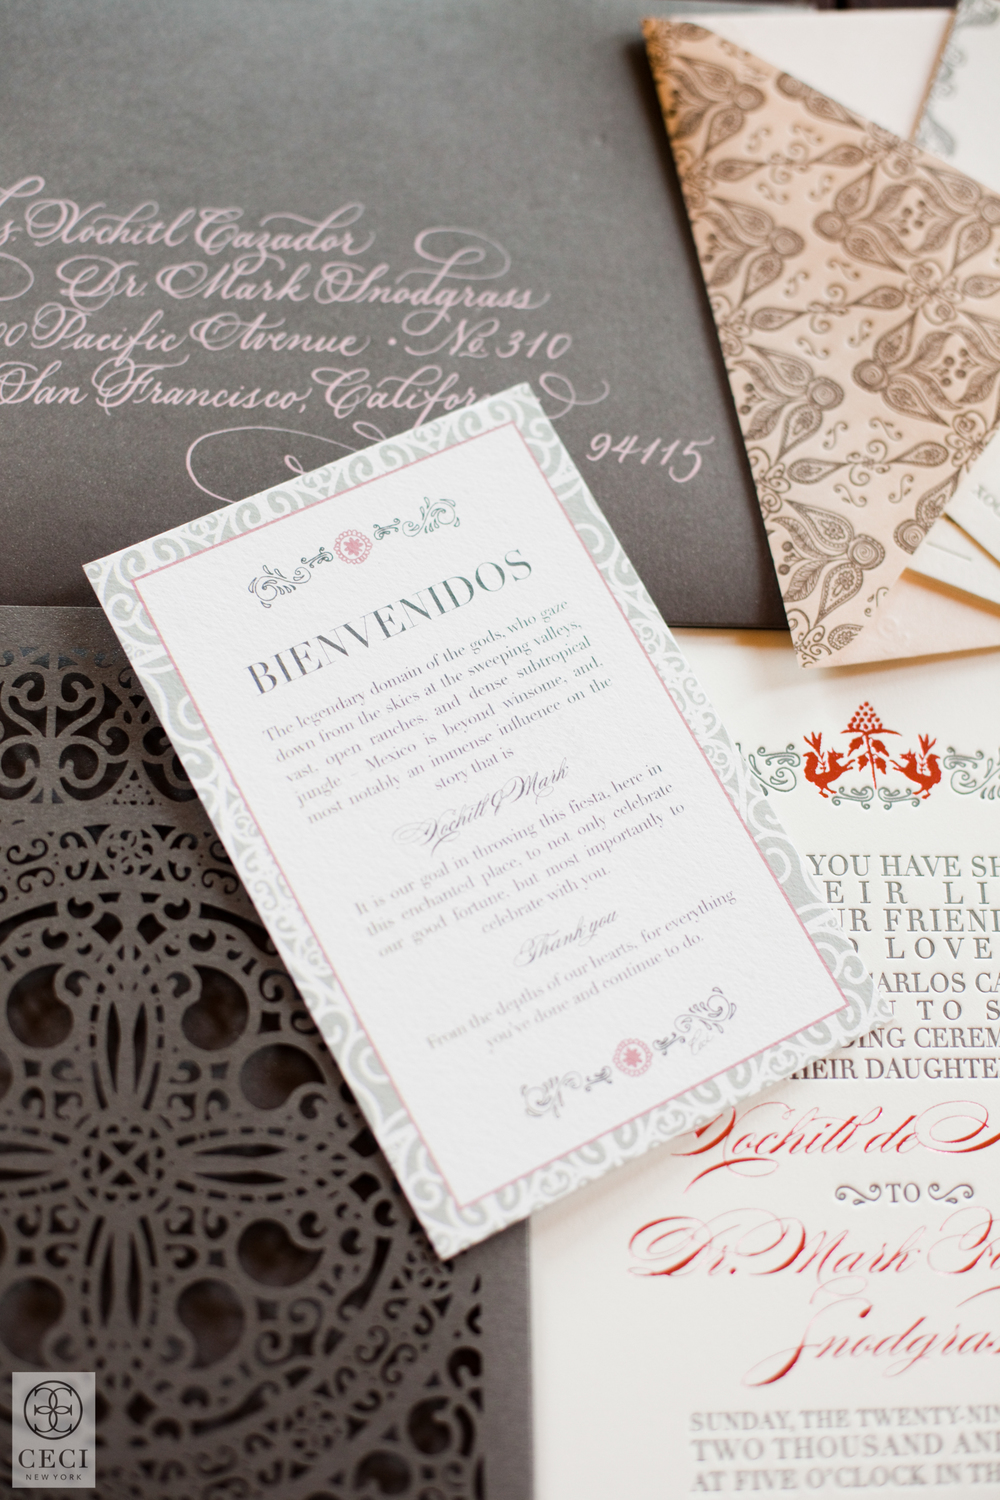 Ceci_New_York_Custom_Luxury_Wedding_LaserCut_Stationery_Personalized_Couture_Foil_Stamping_Mexico_Otomi_Chic_-4.jpg